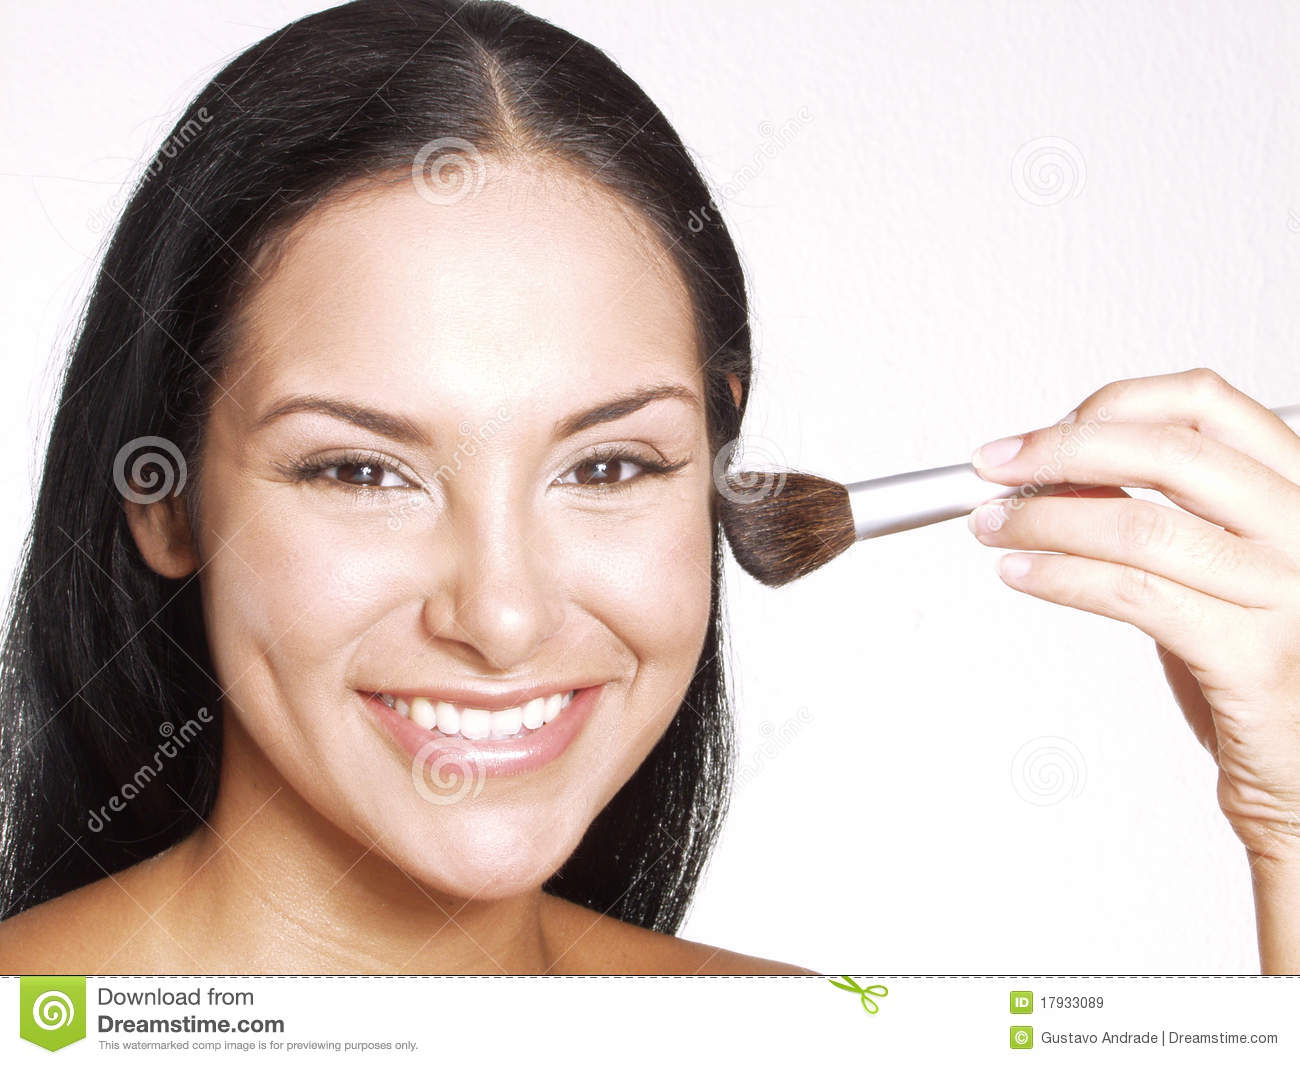 mascara spanish girl personals The differences between the girl  in what way do you want the woman you marry to be different from the girl you are dating  even if that means wearing no makeup.